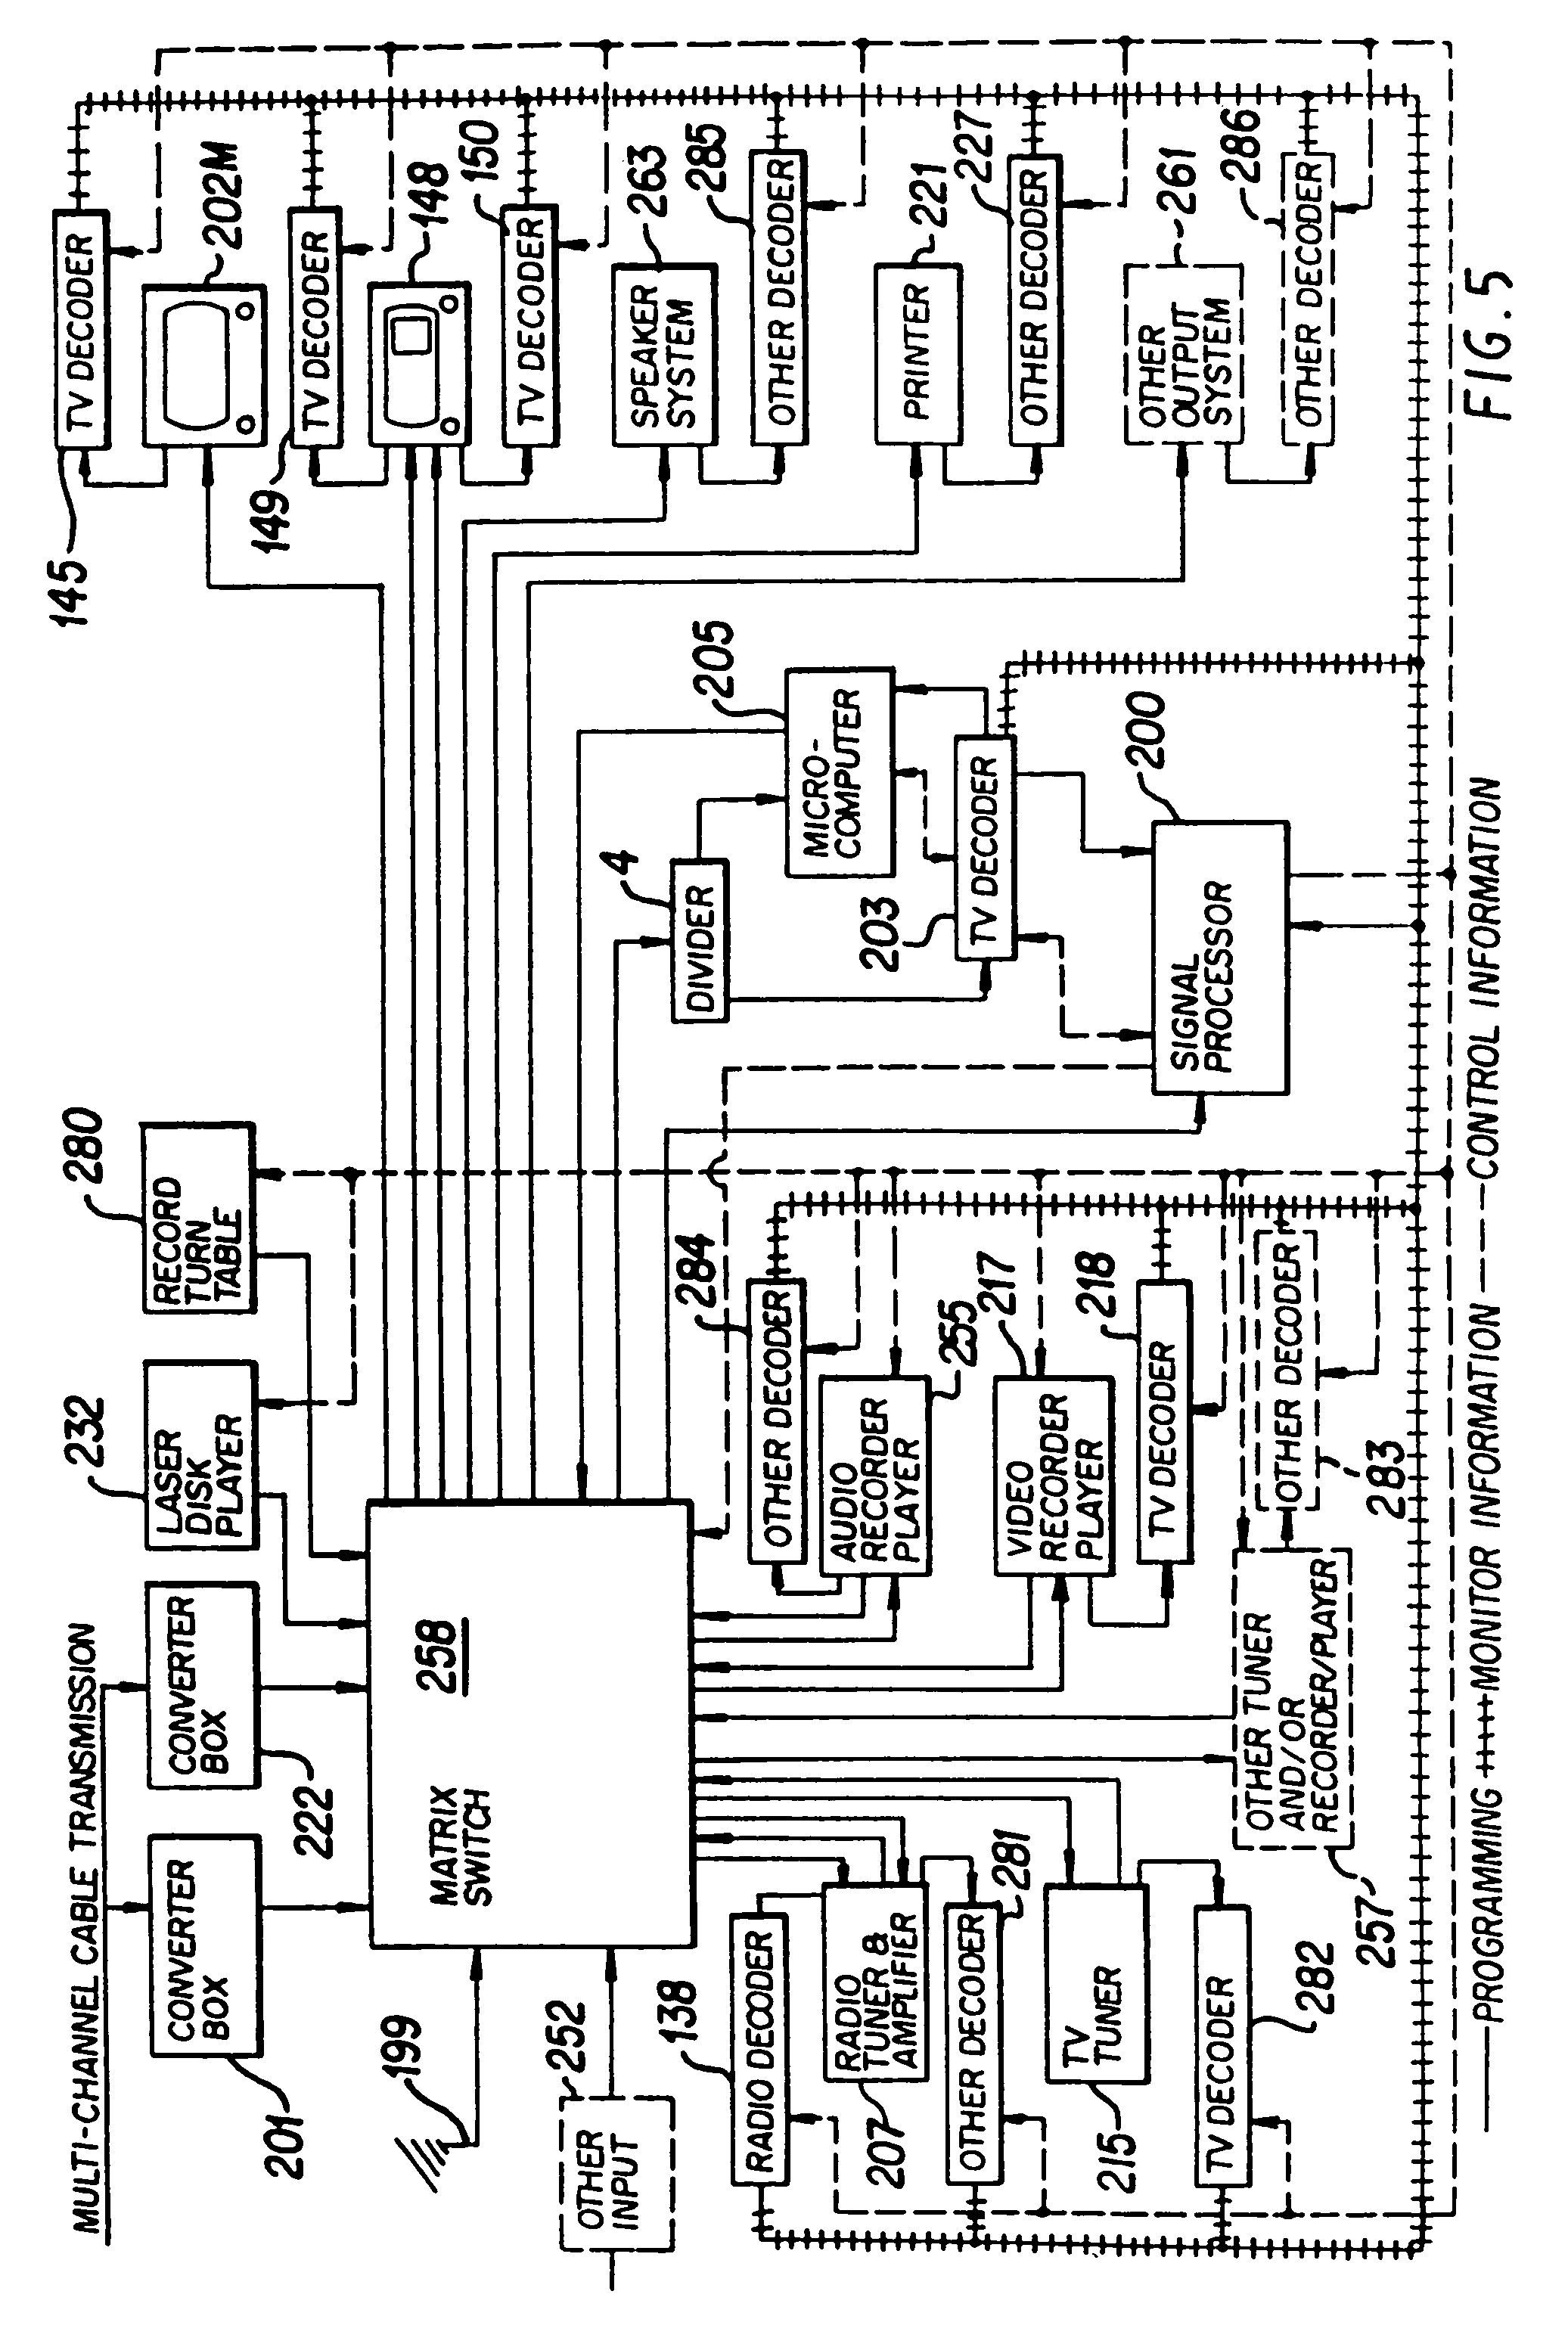 Us7966640b1 Signal Processing Apparatus And Methods Google Patents 1911 Sear Diagram Free Download Wiring Diagrams Pictures